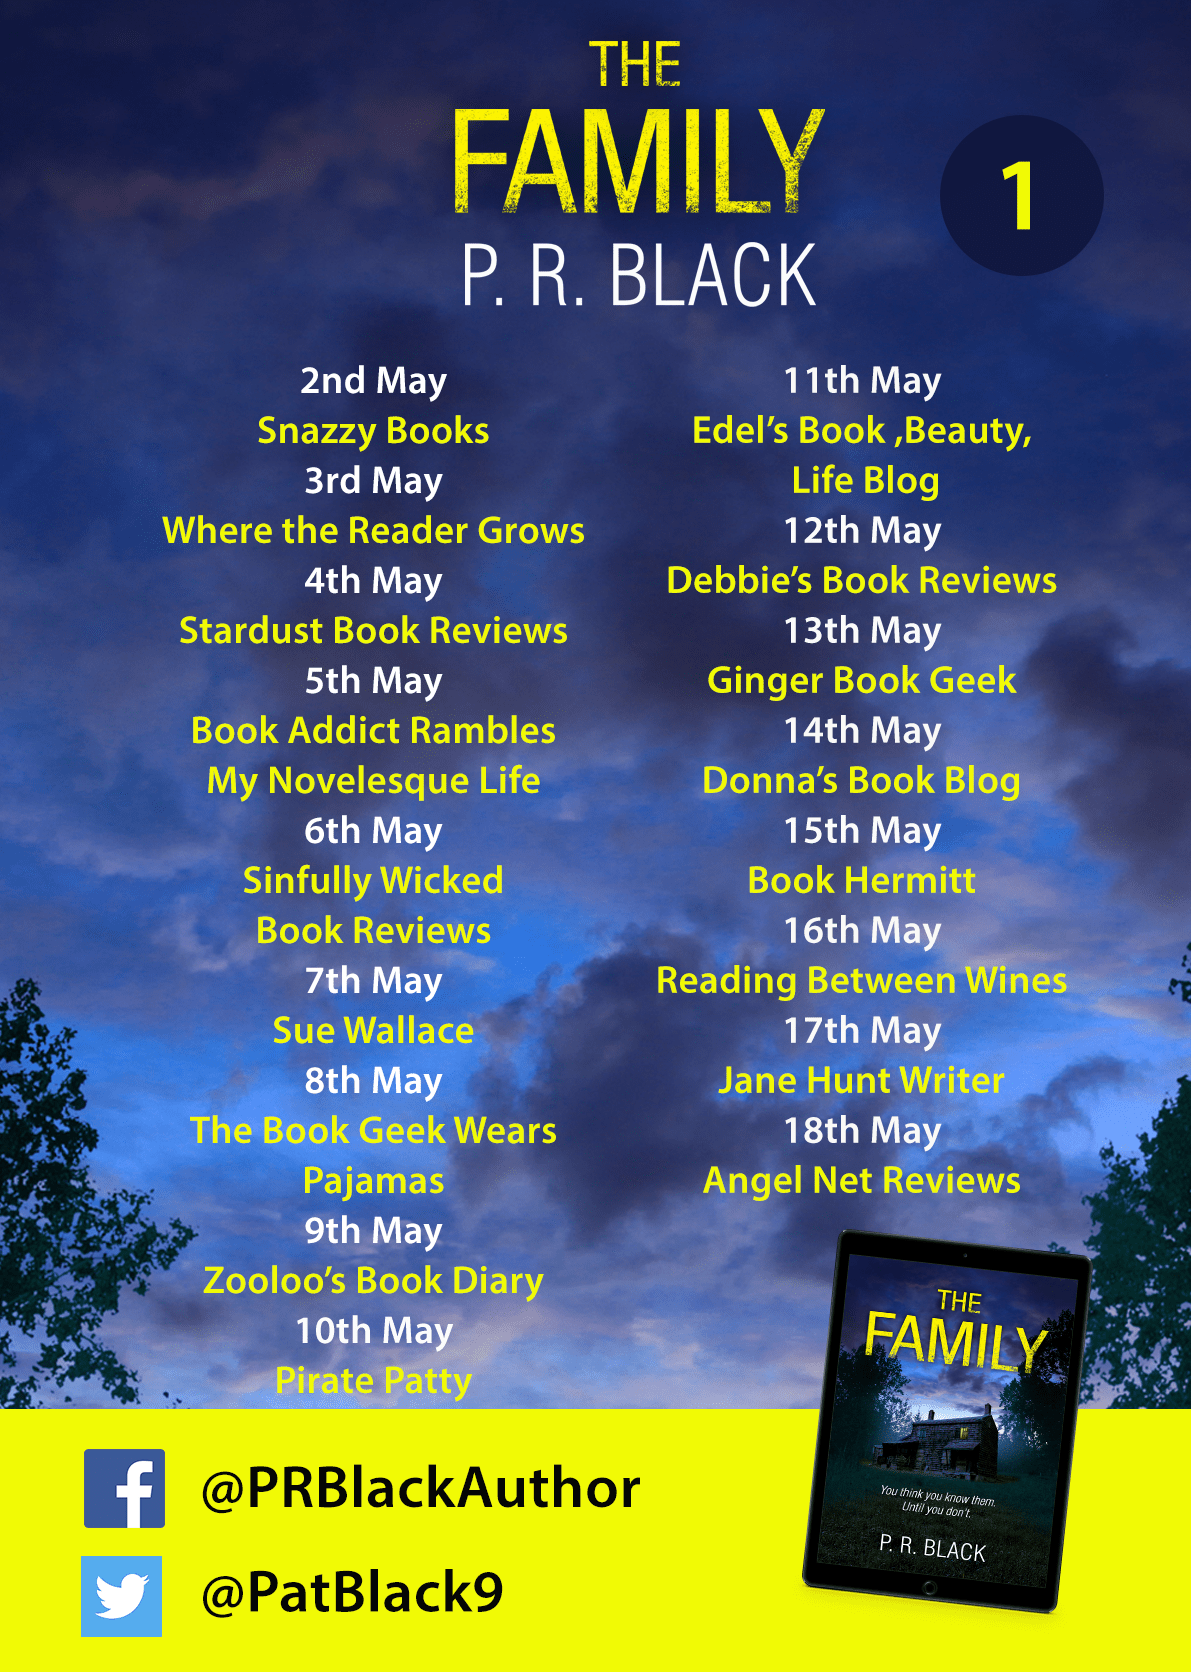 #BookReview of The Family by P.R Black @PatBlack9 @aria_fiction #Netgalley #TheFamily